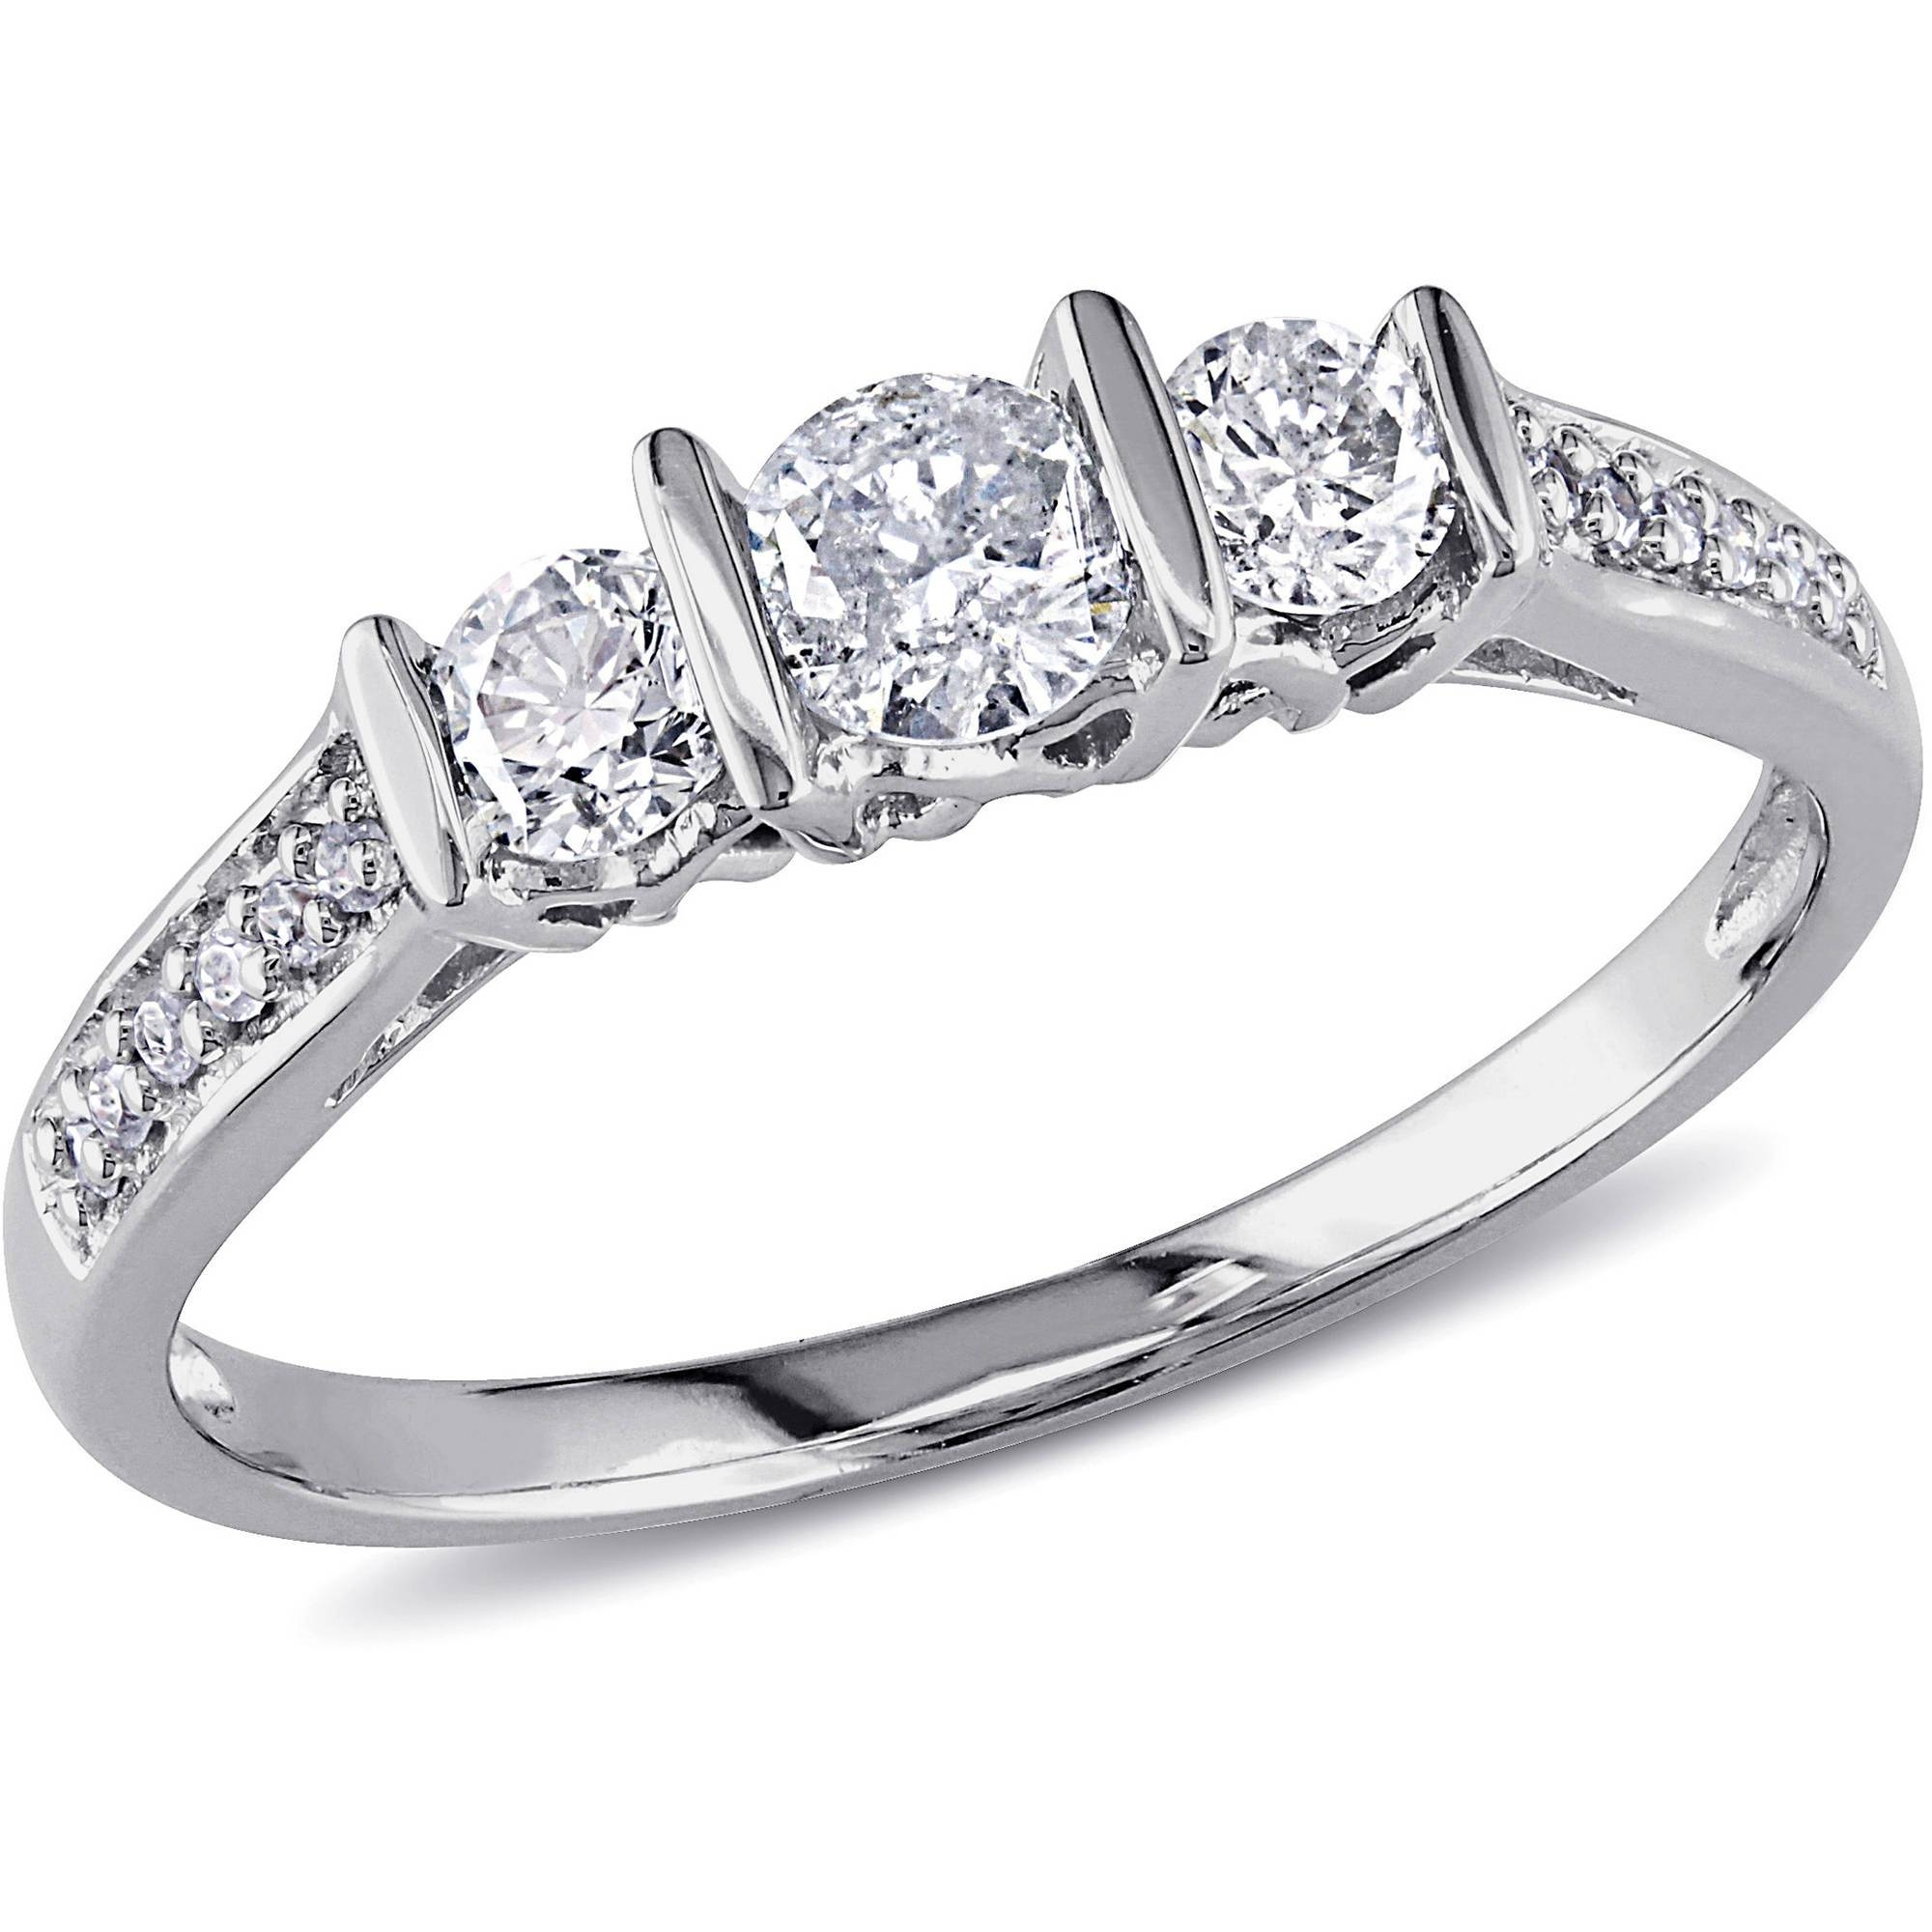 of elegant with attachment wedding diamond engagement melody keepsake t rings fresh w carat